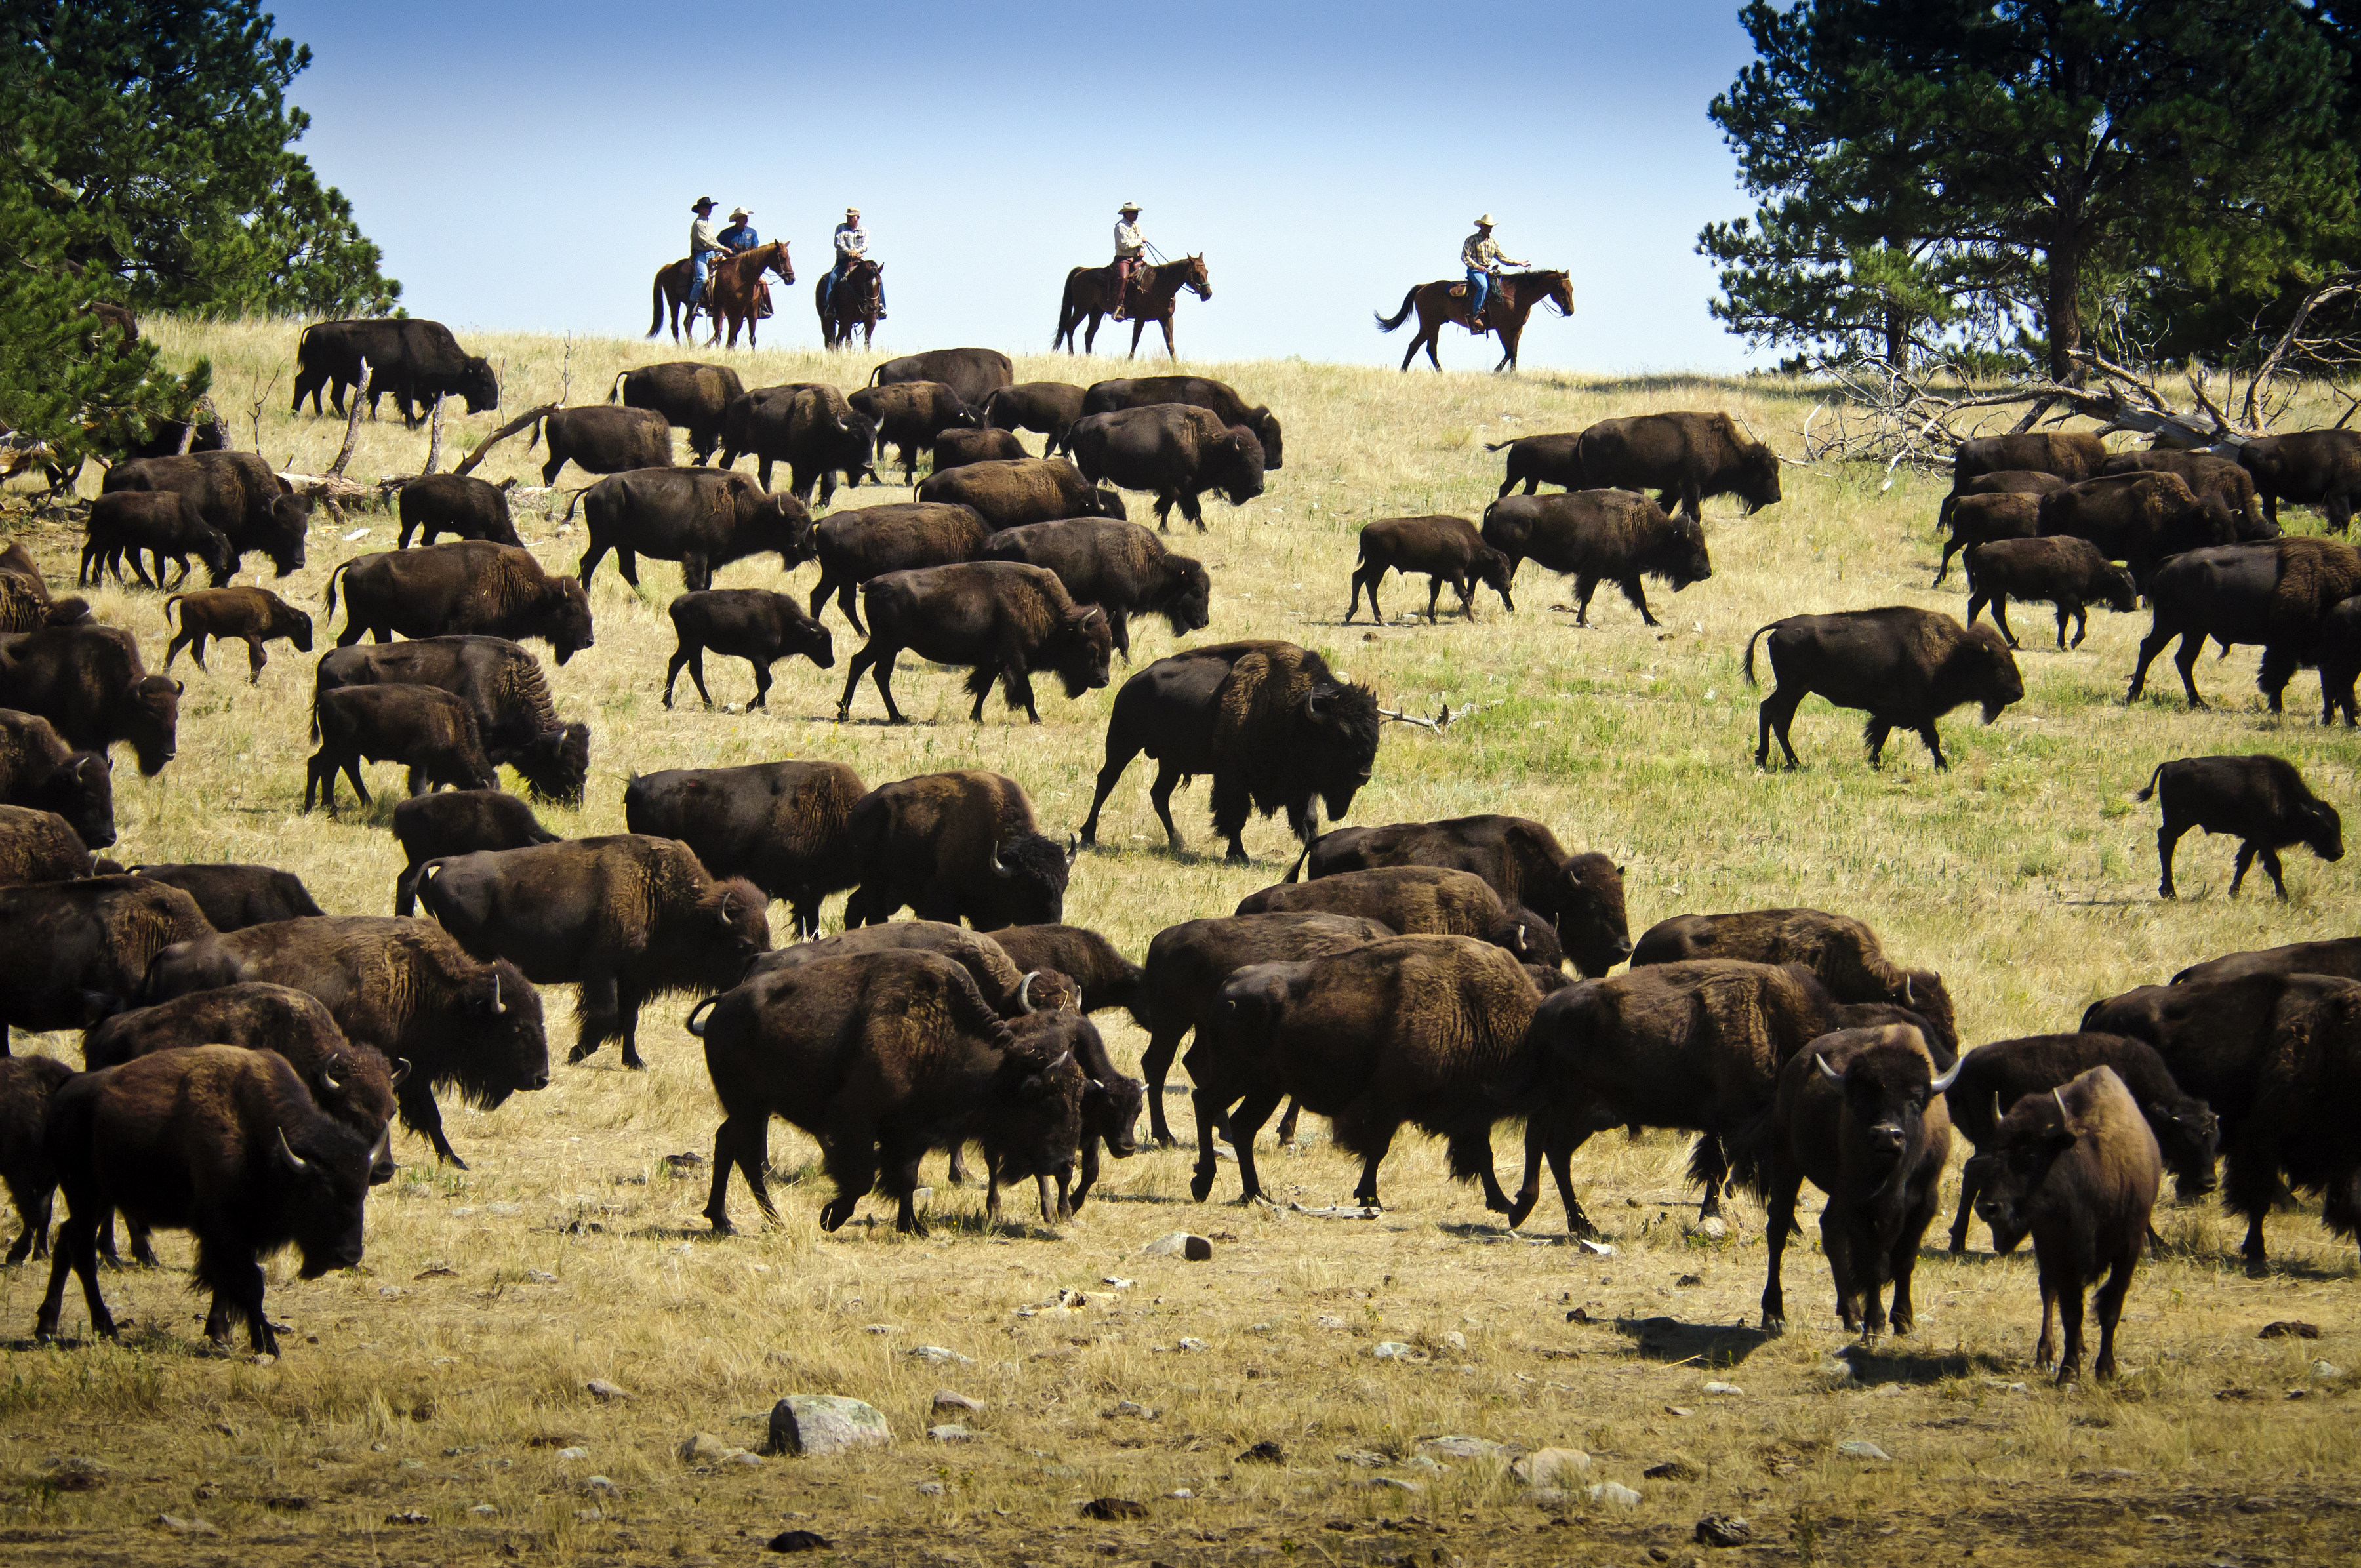 Riders on horses round up over a thousand buffalo in Custer State Park